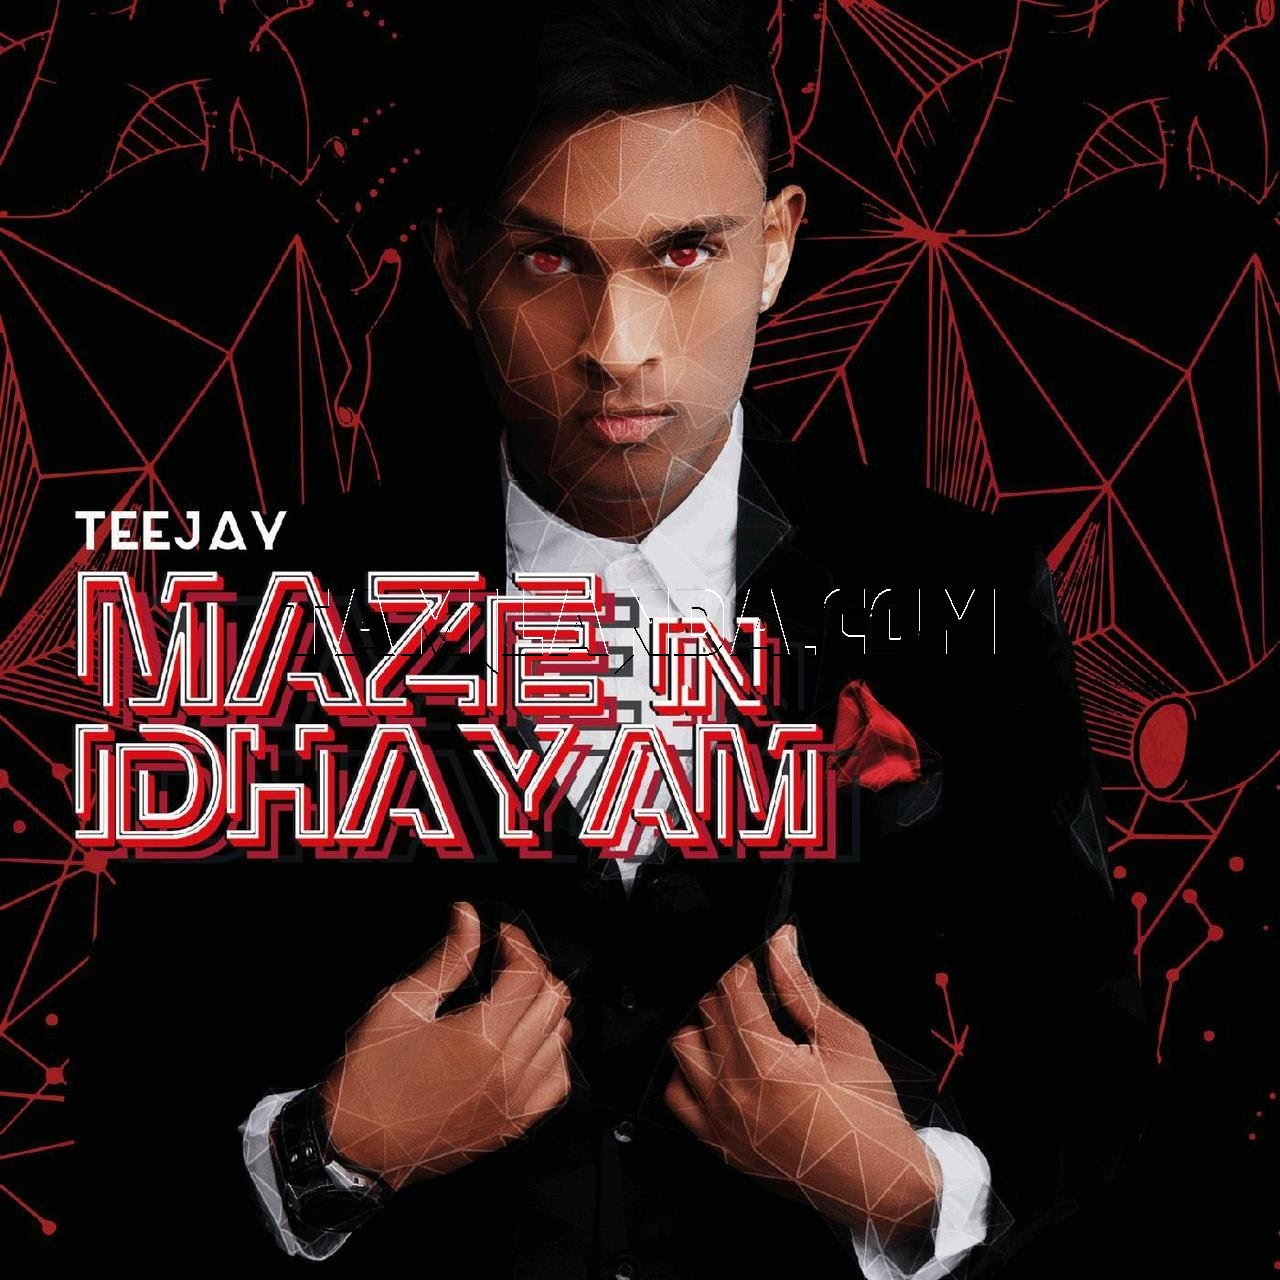 Teejay – Maze in Idhayam FLAC Songs